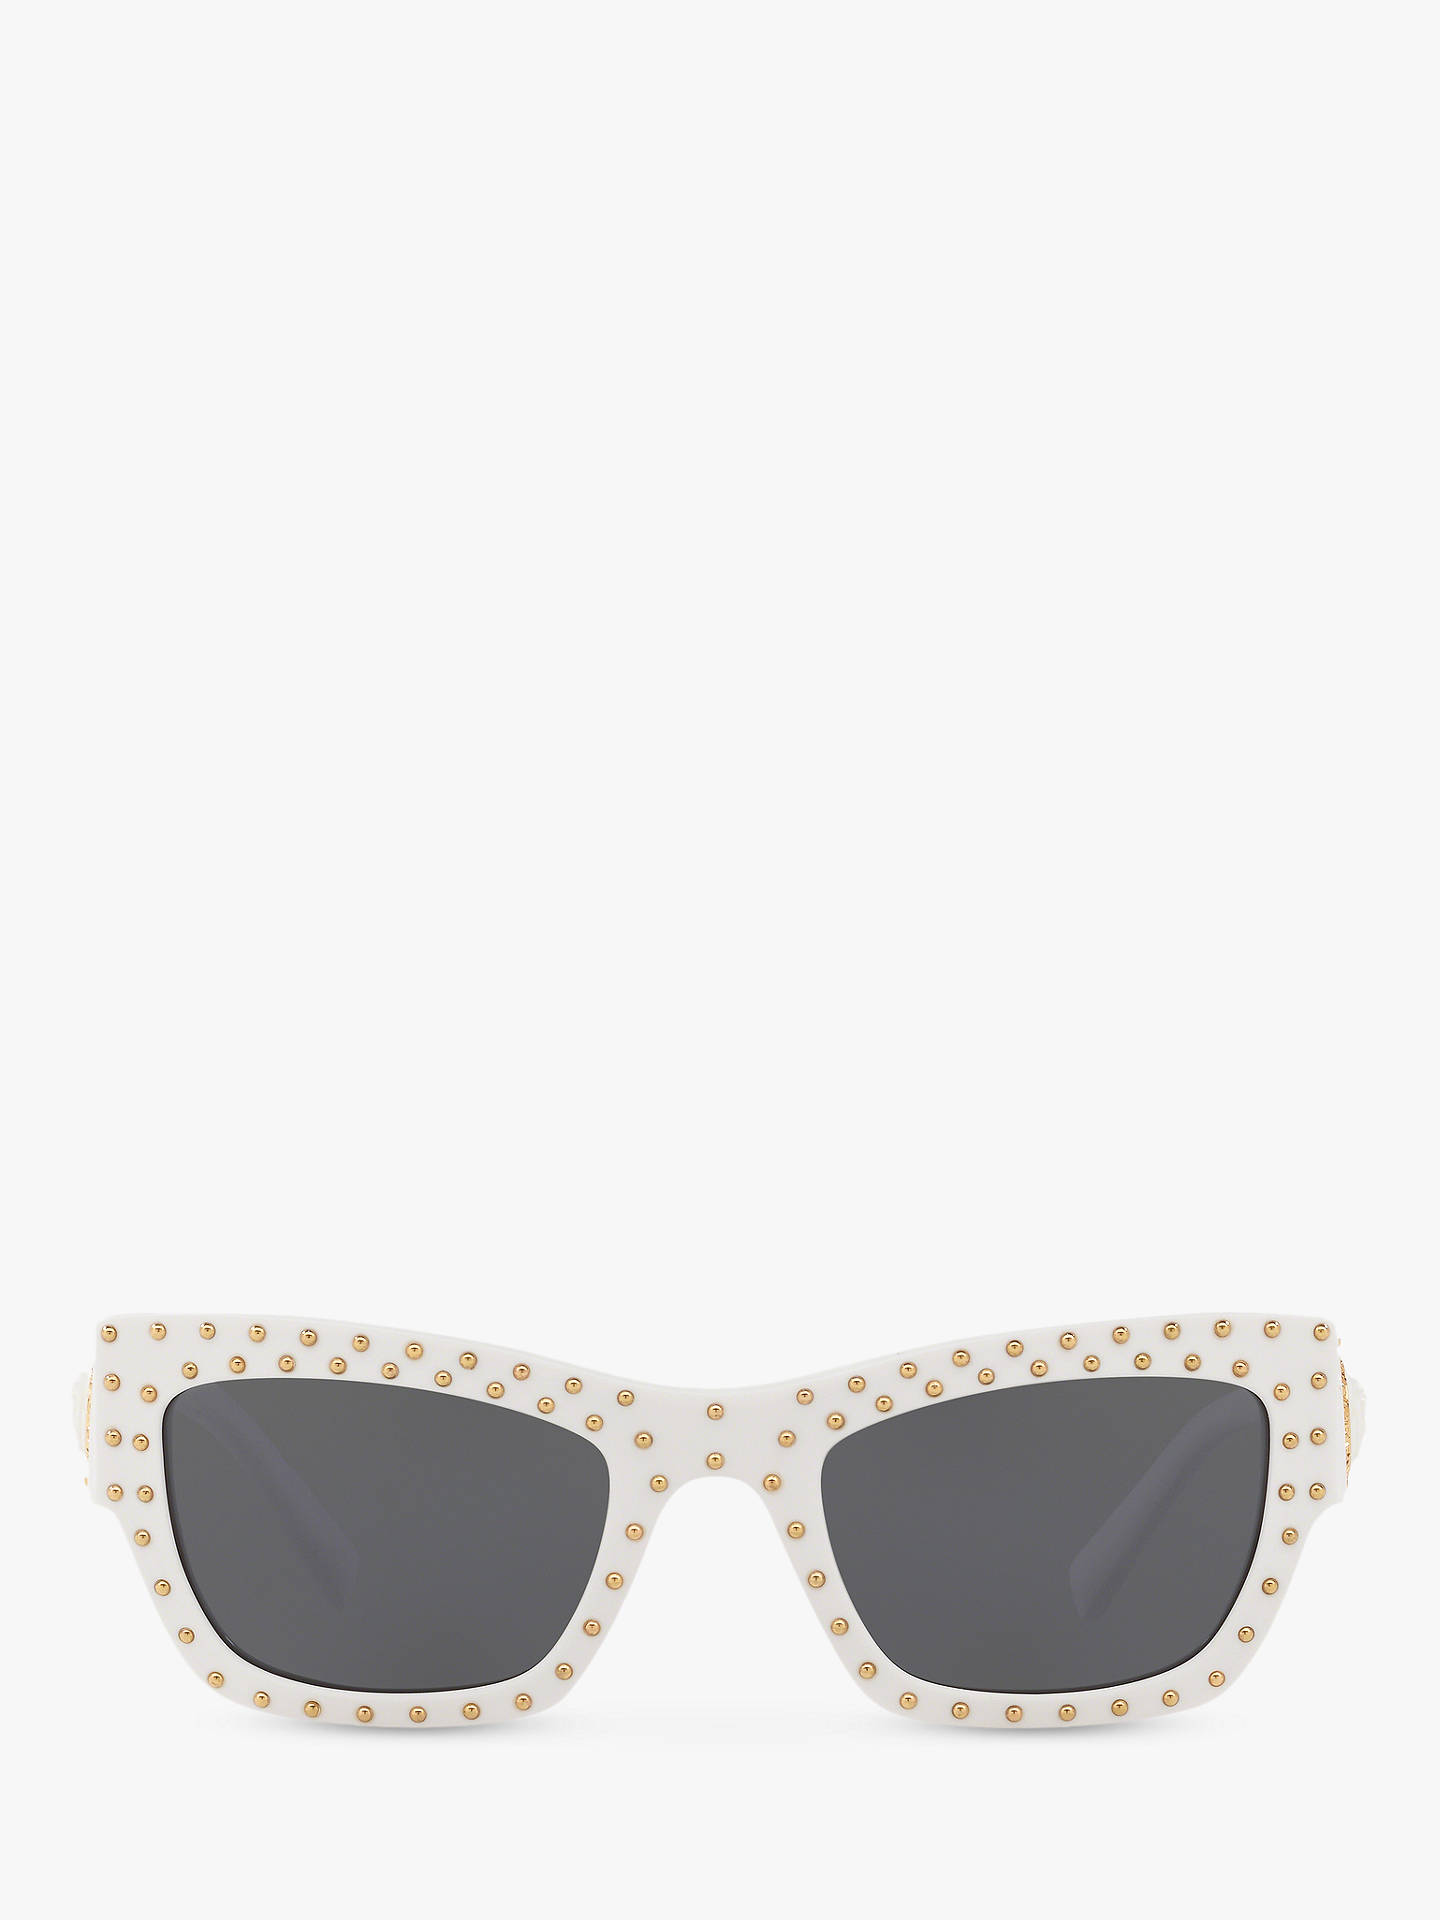 Buy Versace VE4358 Women's Rectangular Sunglasses, White/Grey Online at johnlewis.com